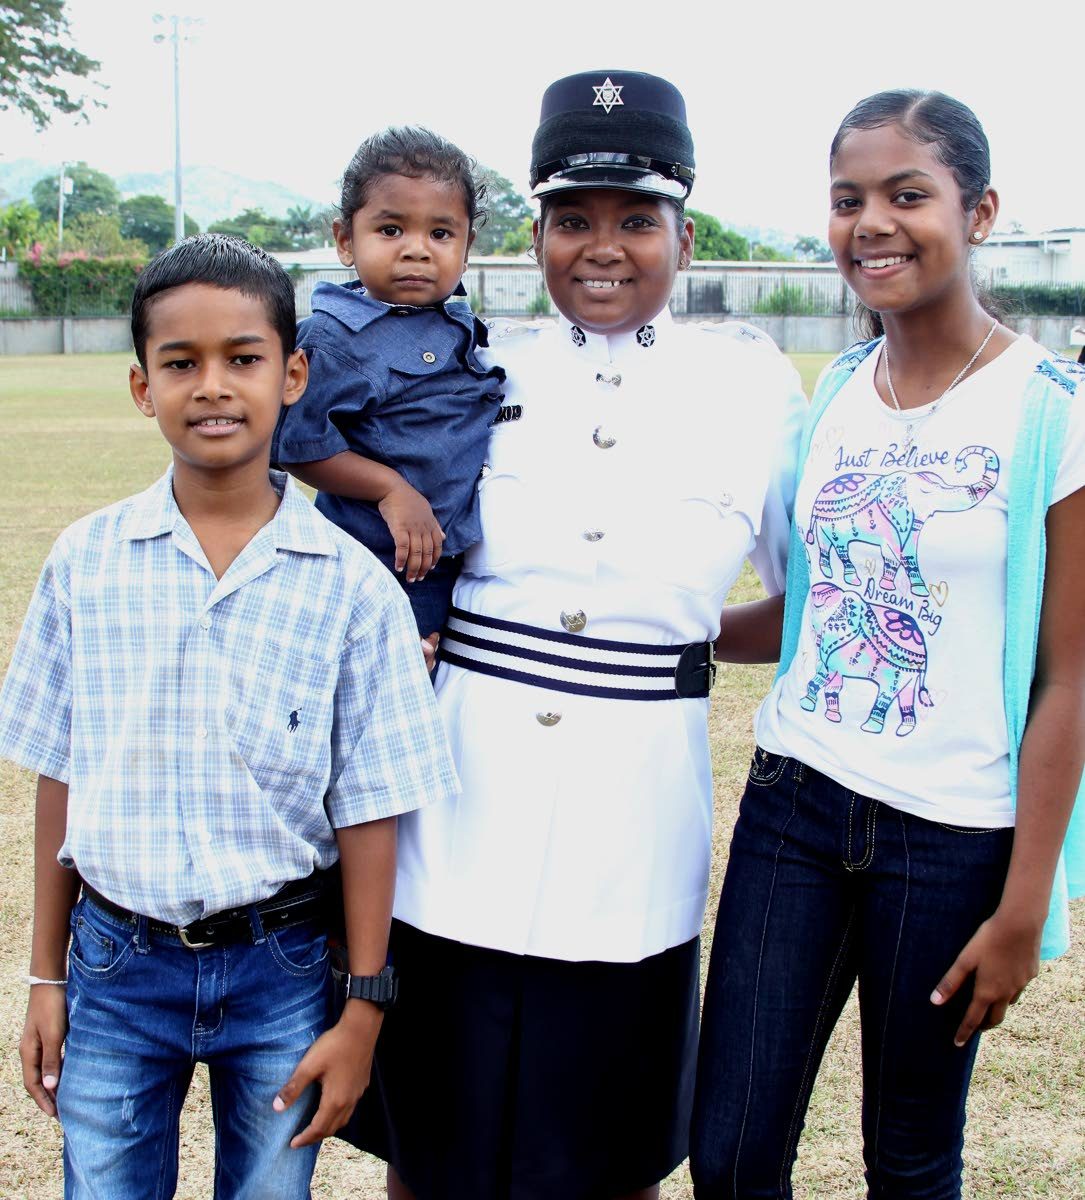 Natasha Gopee shares the proud moment she became a municipal police constable with her children Danesh, two, and Nandini, 13, and nephew Tristan, 10, after the passing out parade for municipal officers at the Police Academy, St James yesterday.